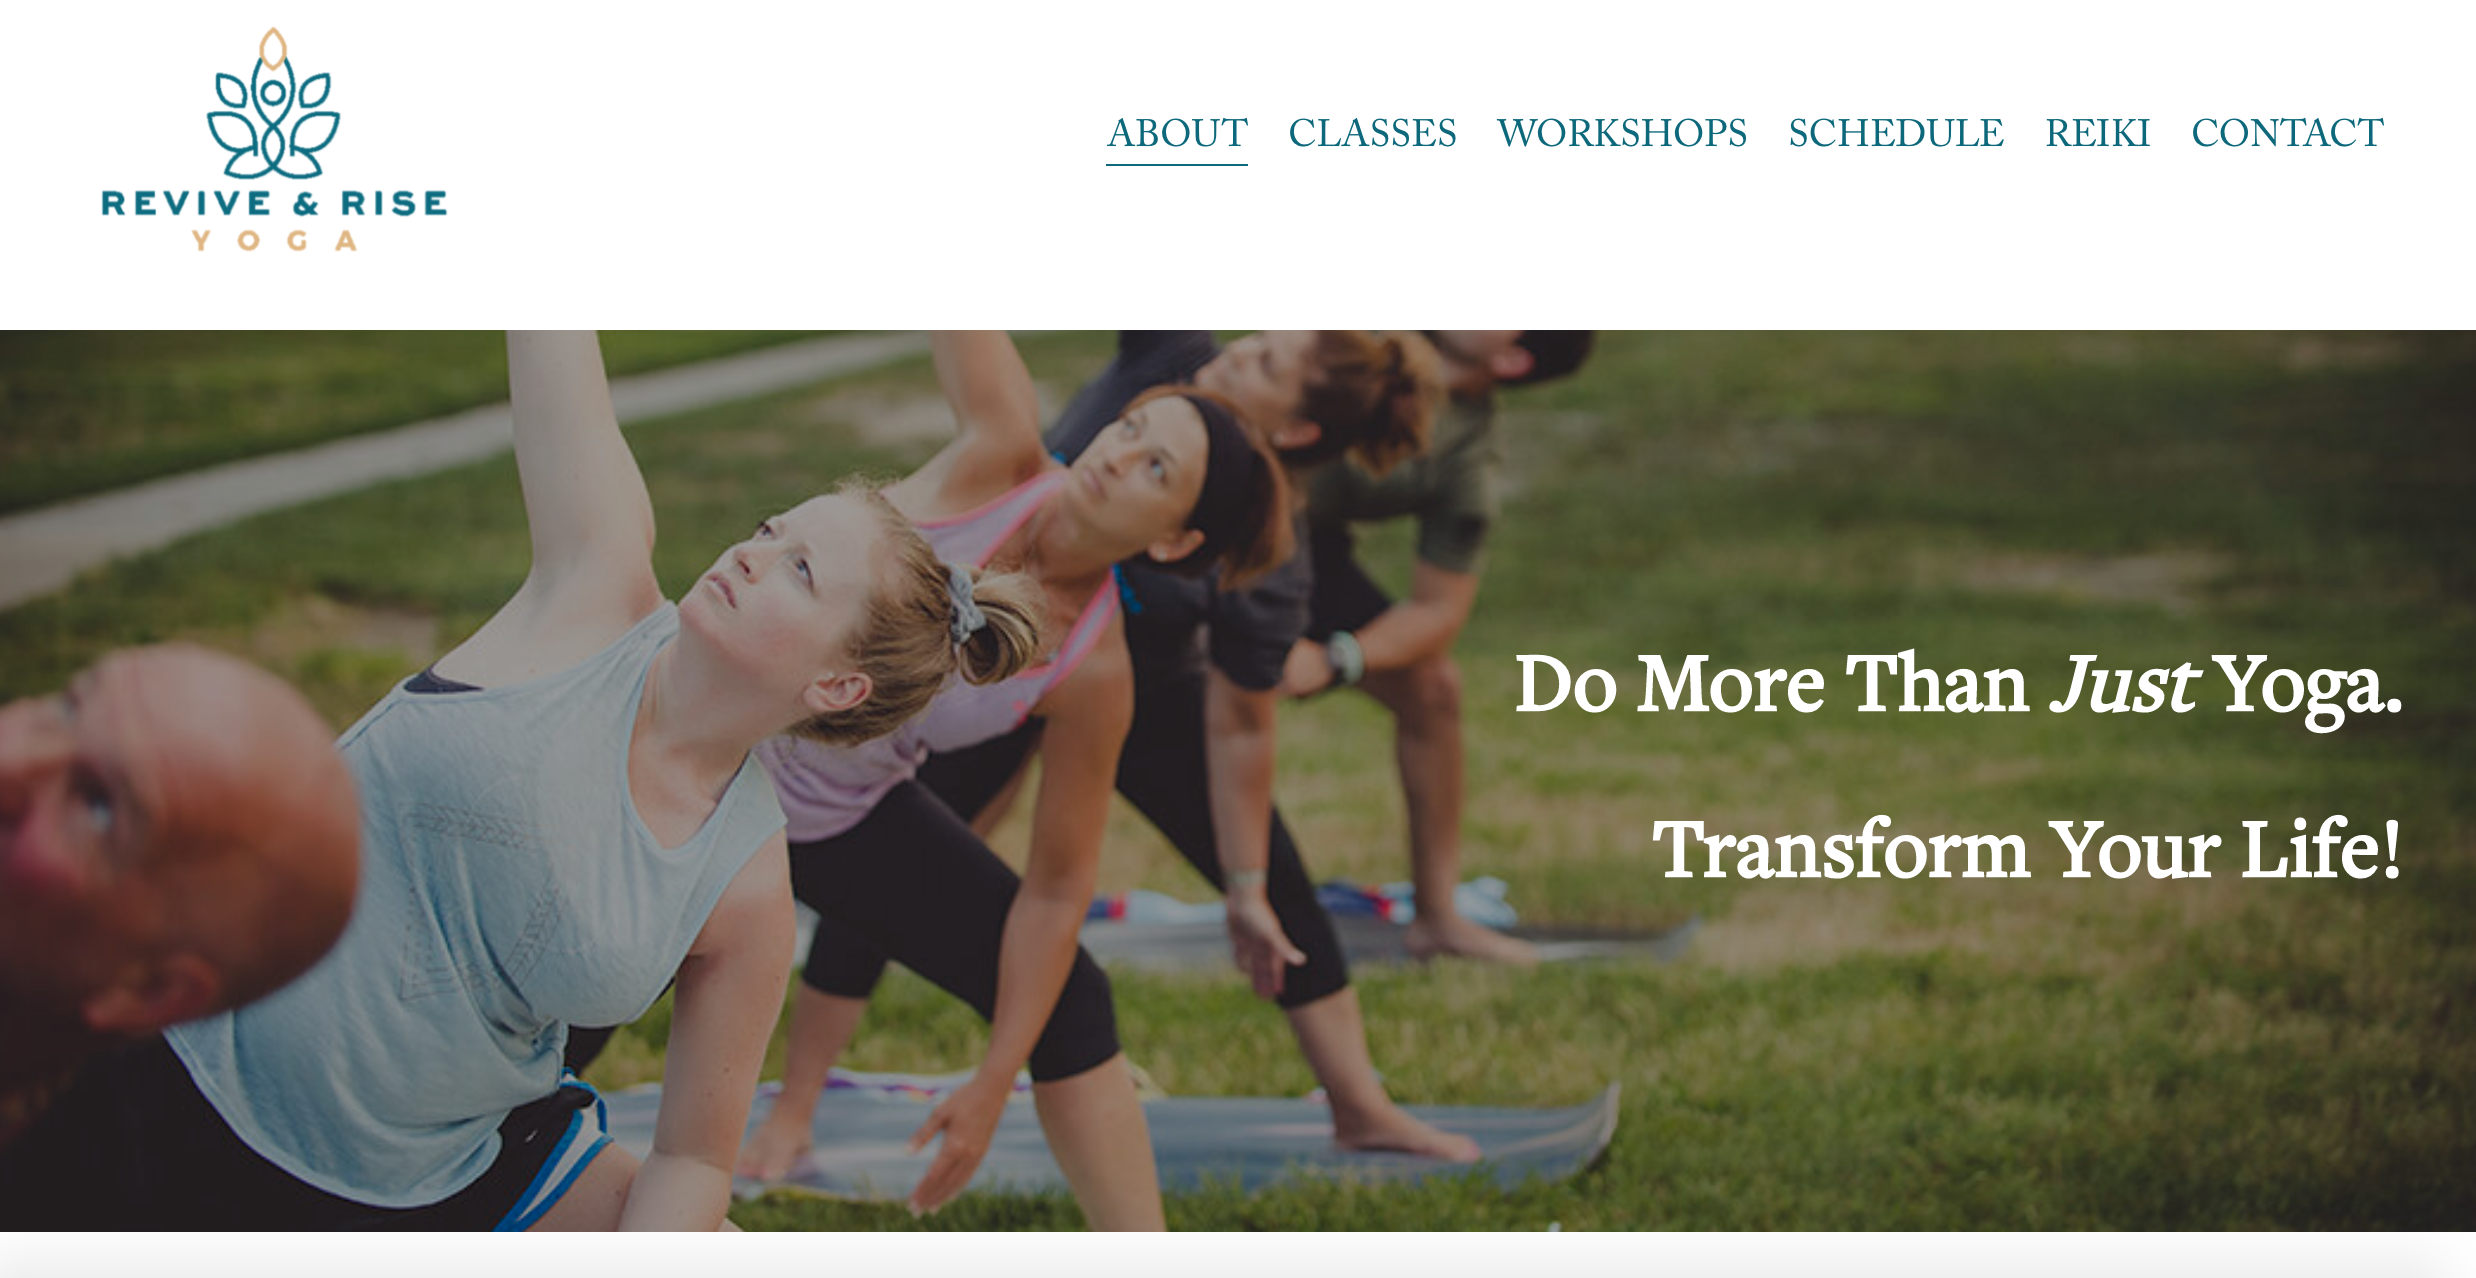 Revive & Rise Yoga (Squarespace)